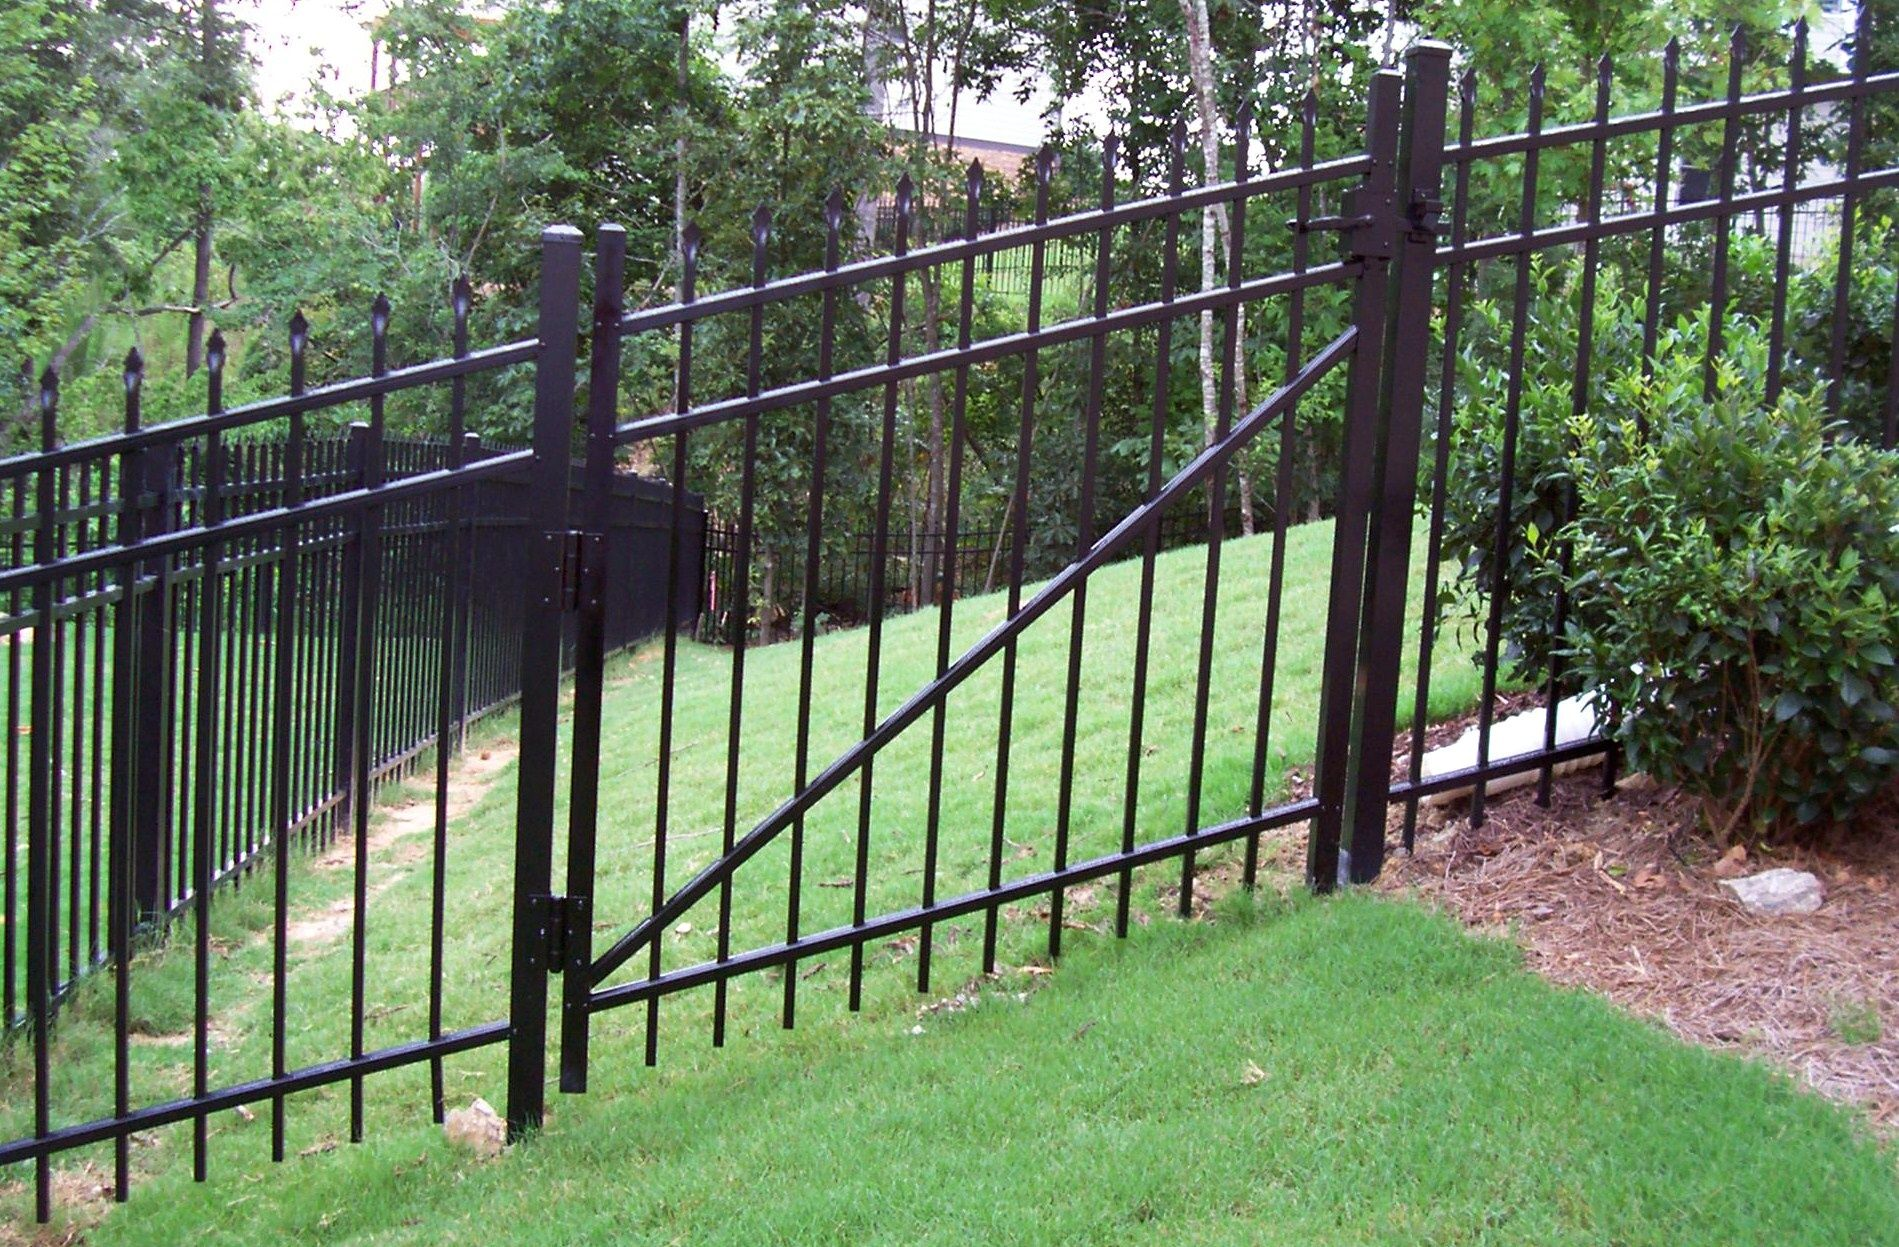 Aluminum Fence Design At An Angle On A Hill Mossy Oak Fence